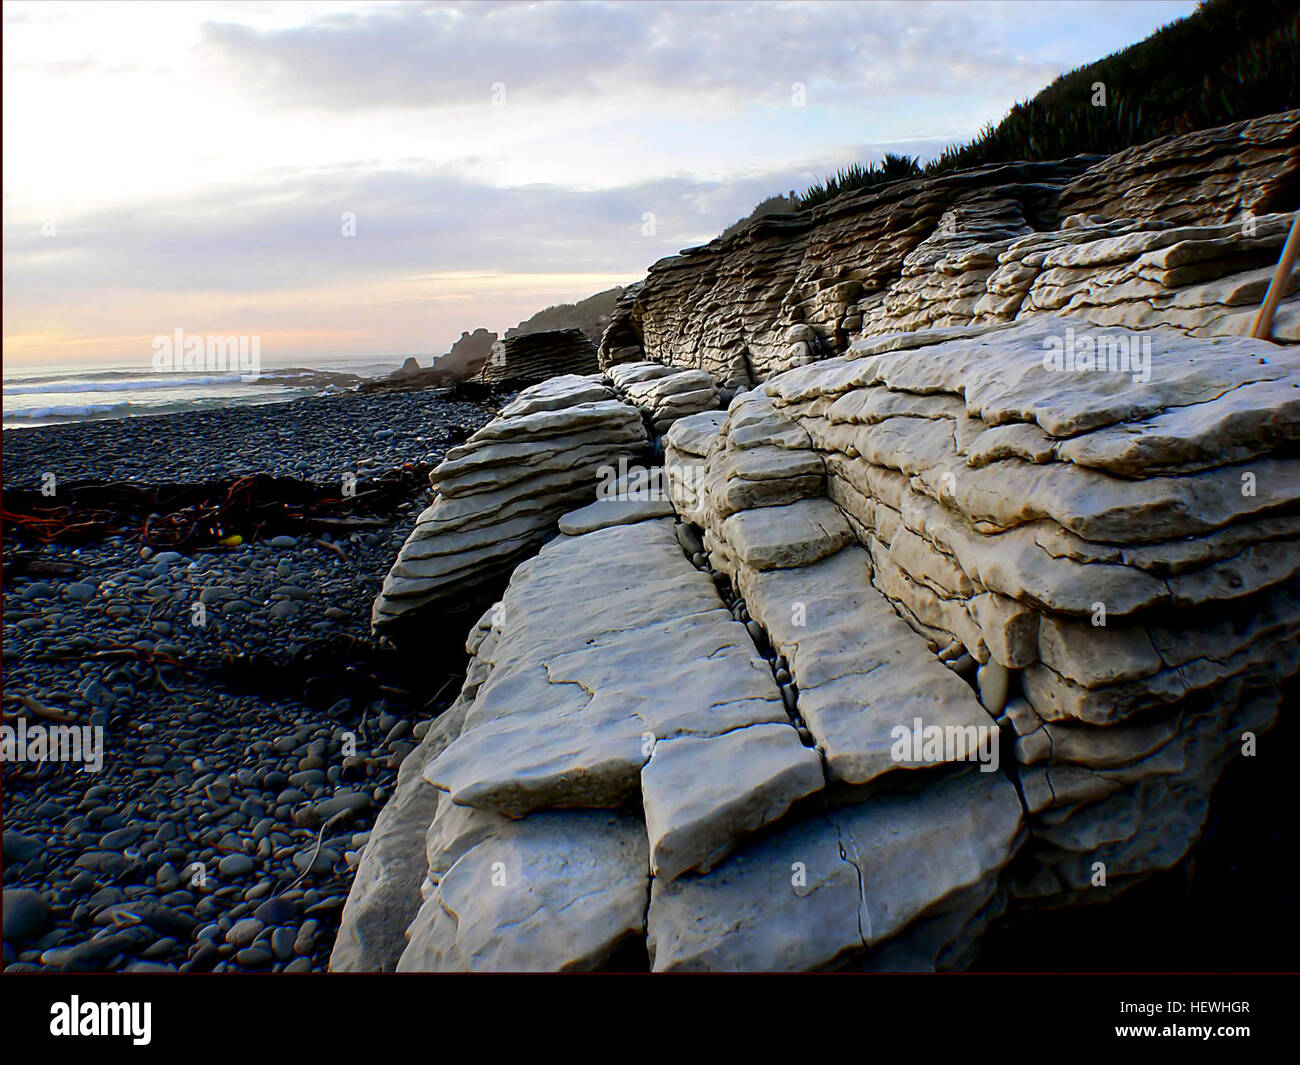 The Pancake Rocks that Punakaiki is famous for, are ...